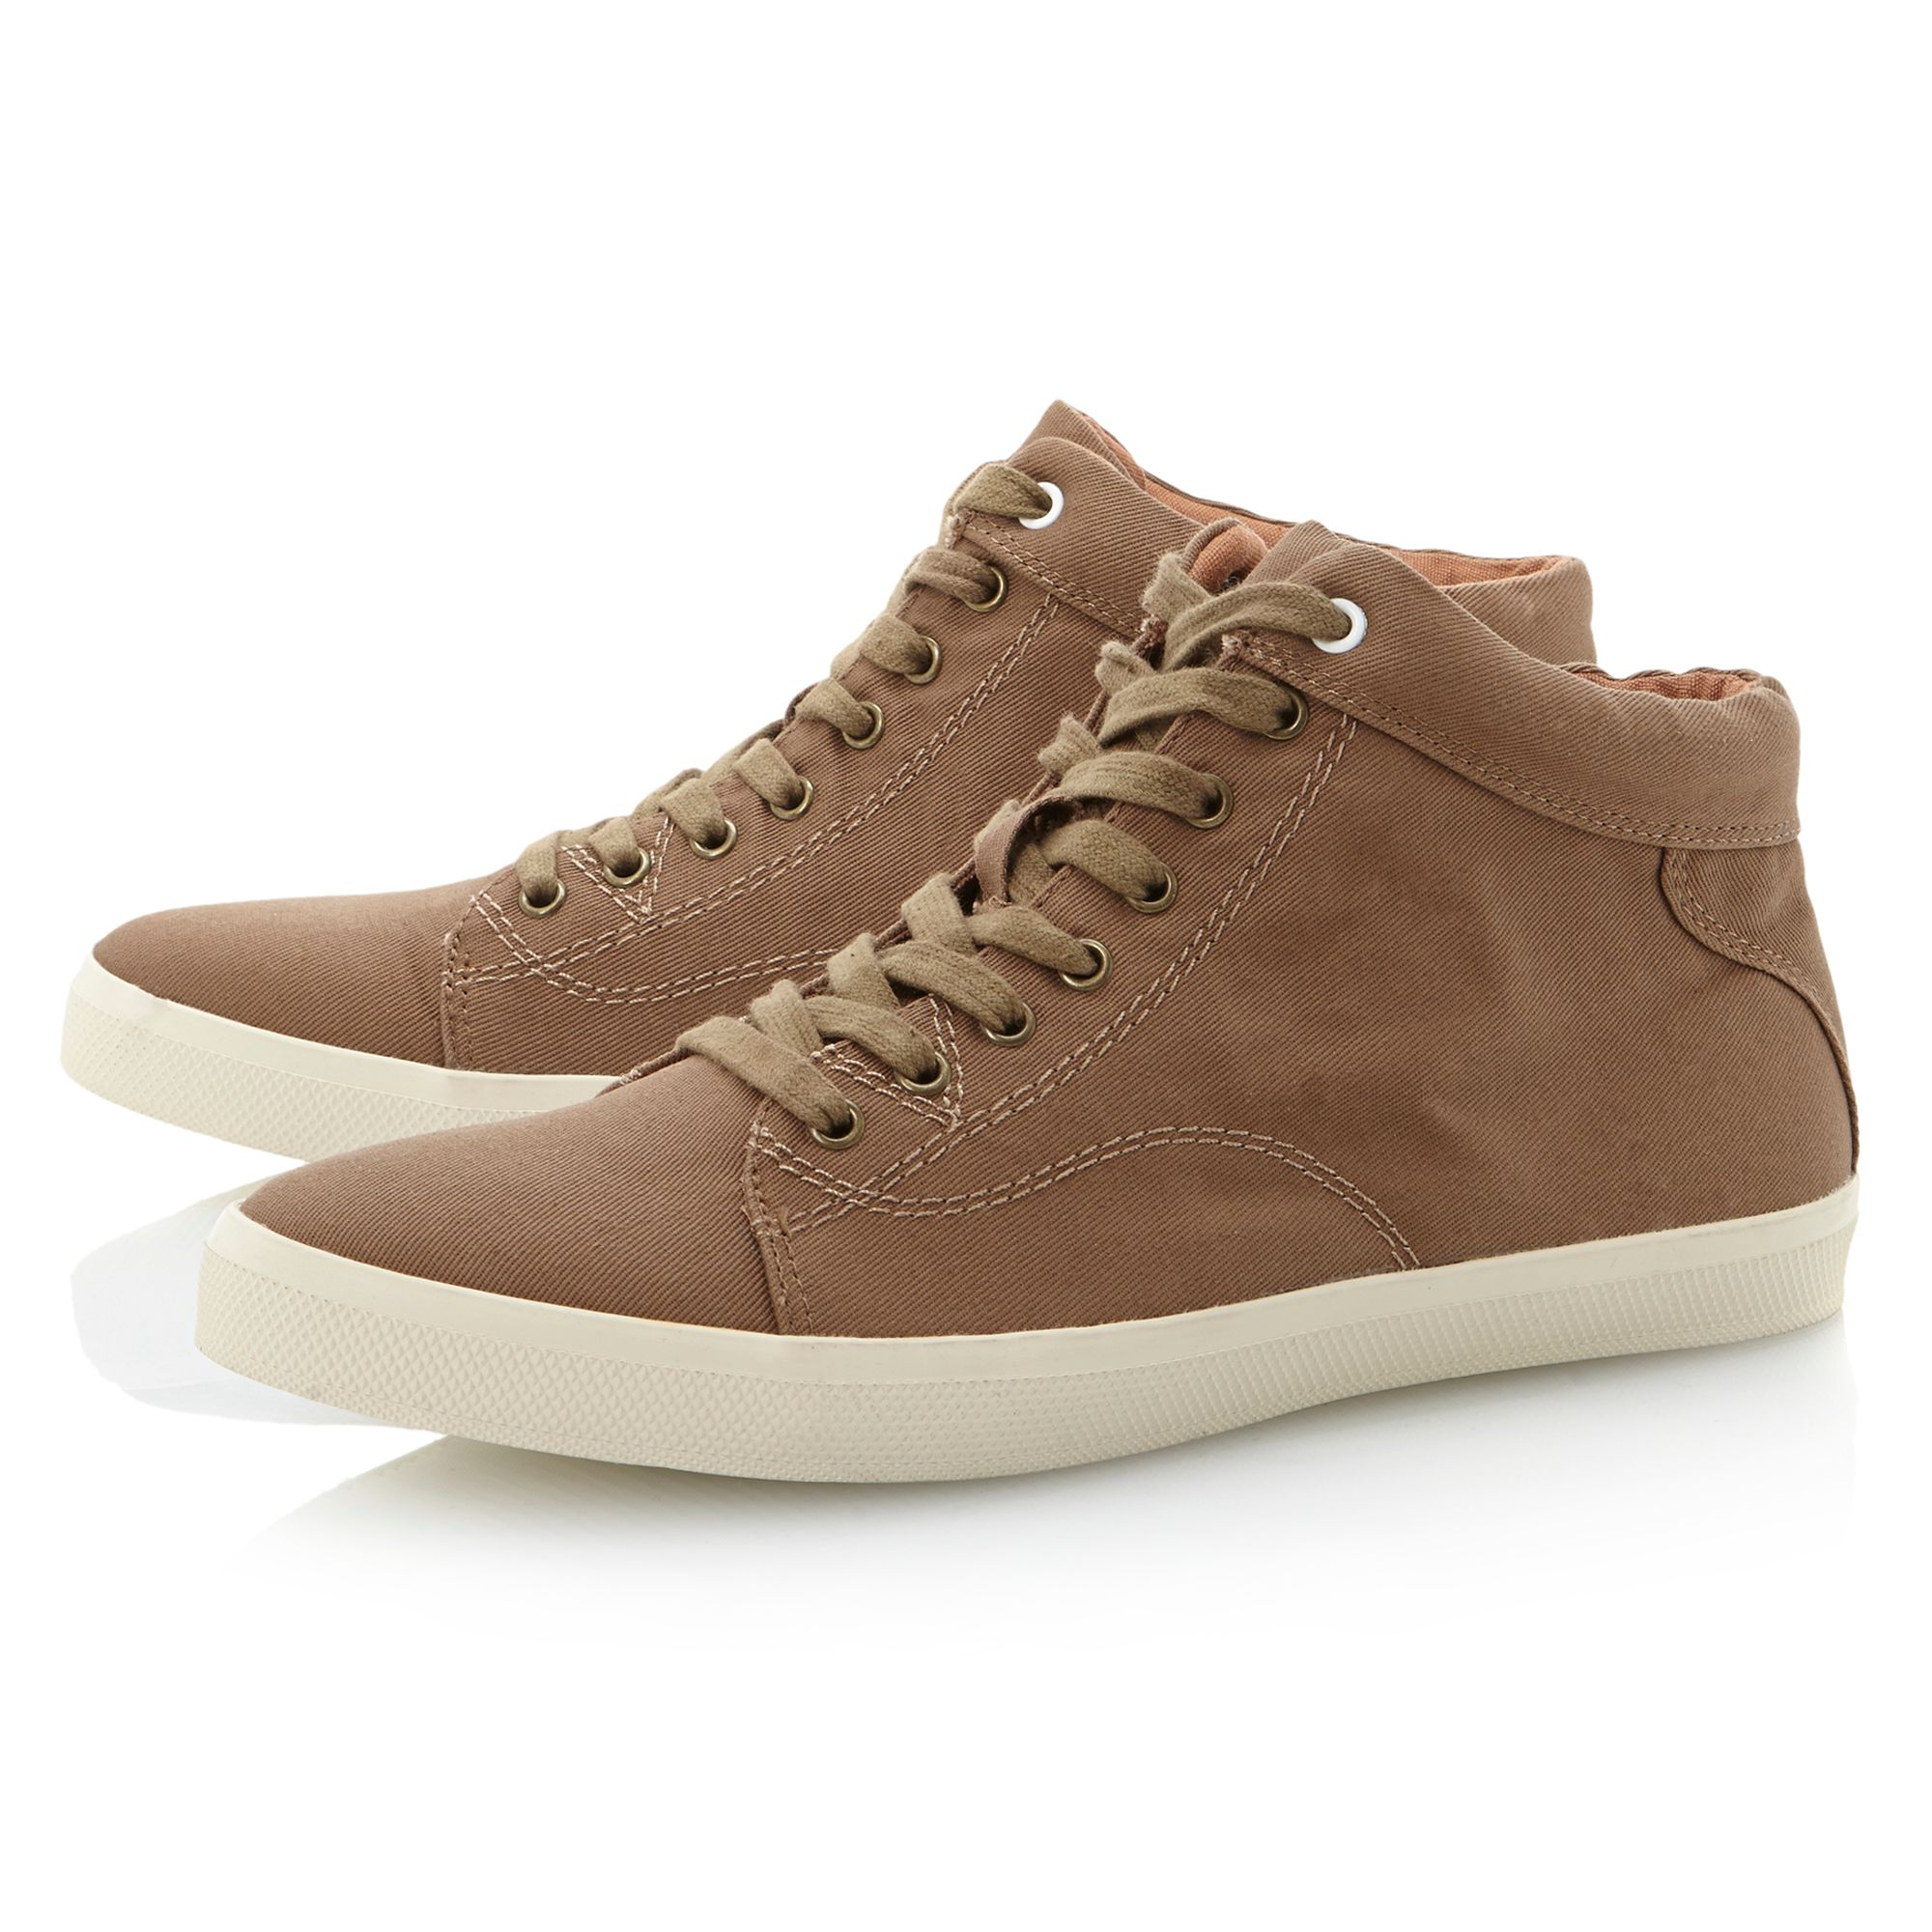 Sampson canvas cupsole lace hitop shoes